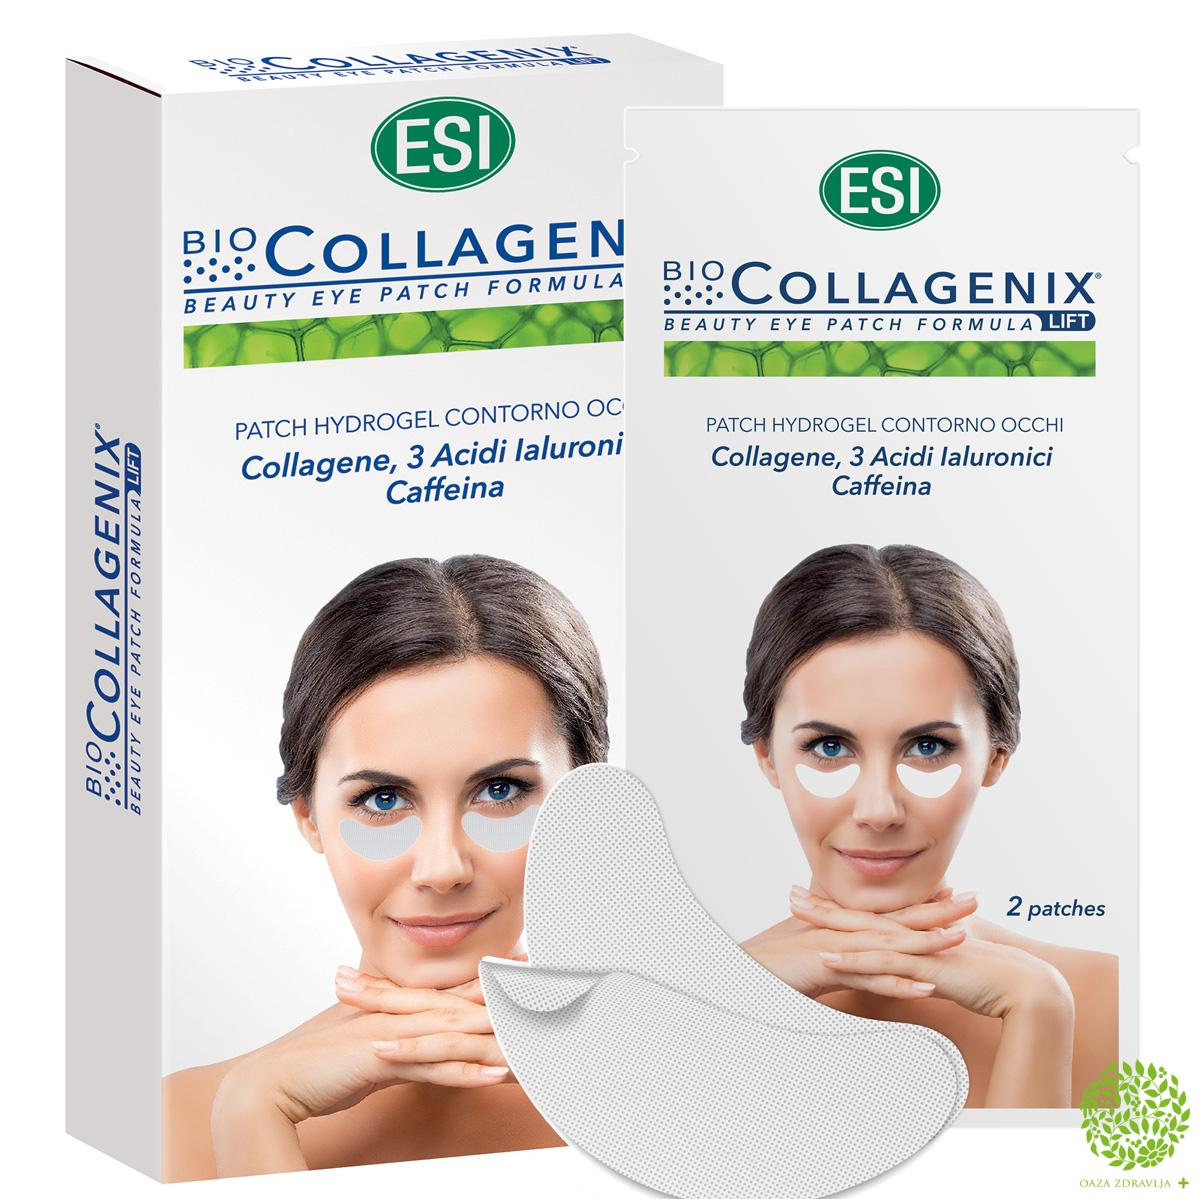 ESI BIOCOLLAGENIX LIFT ANTIAGE FLASTERI 14 komada